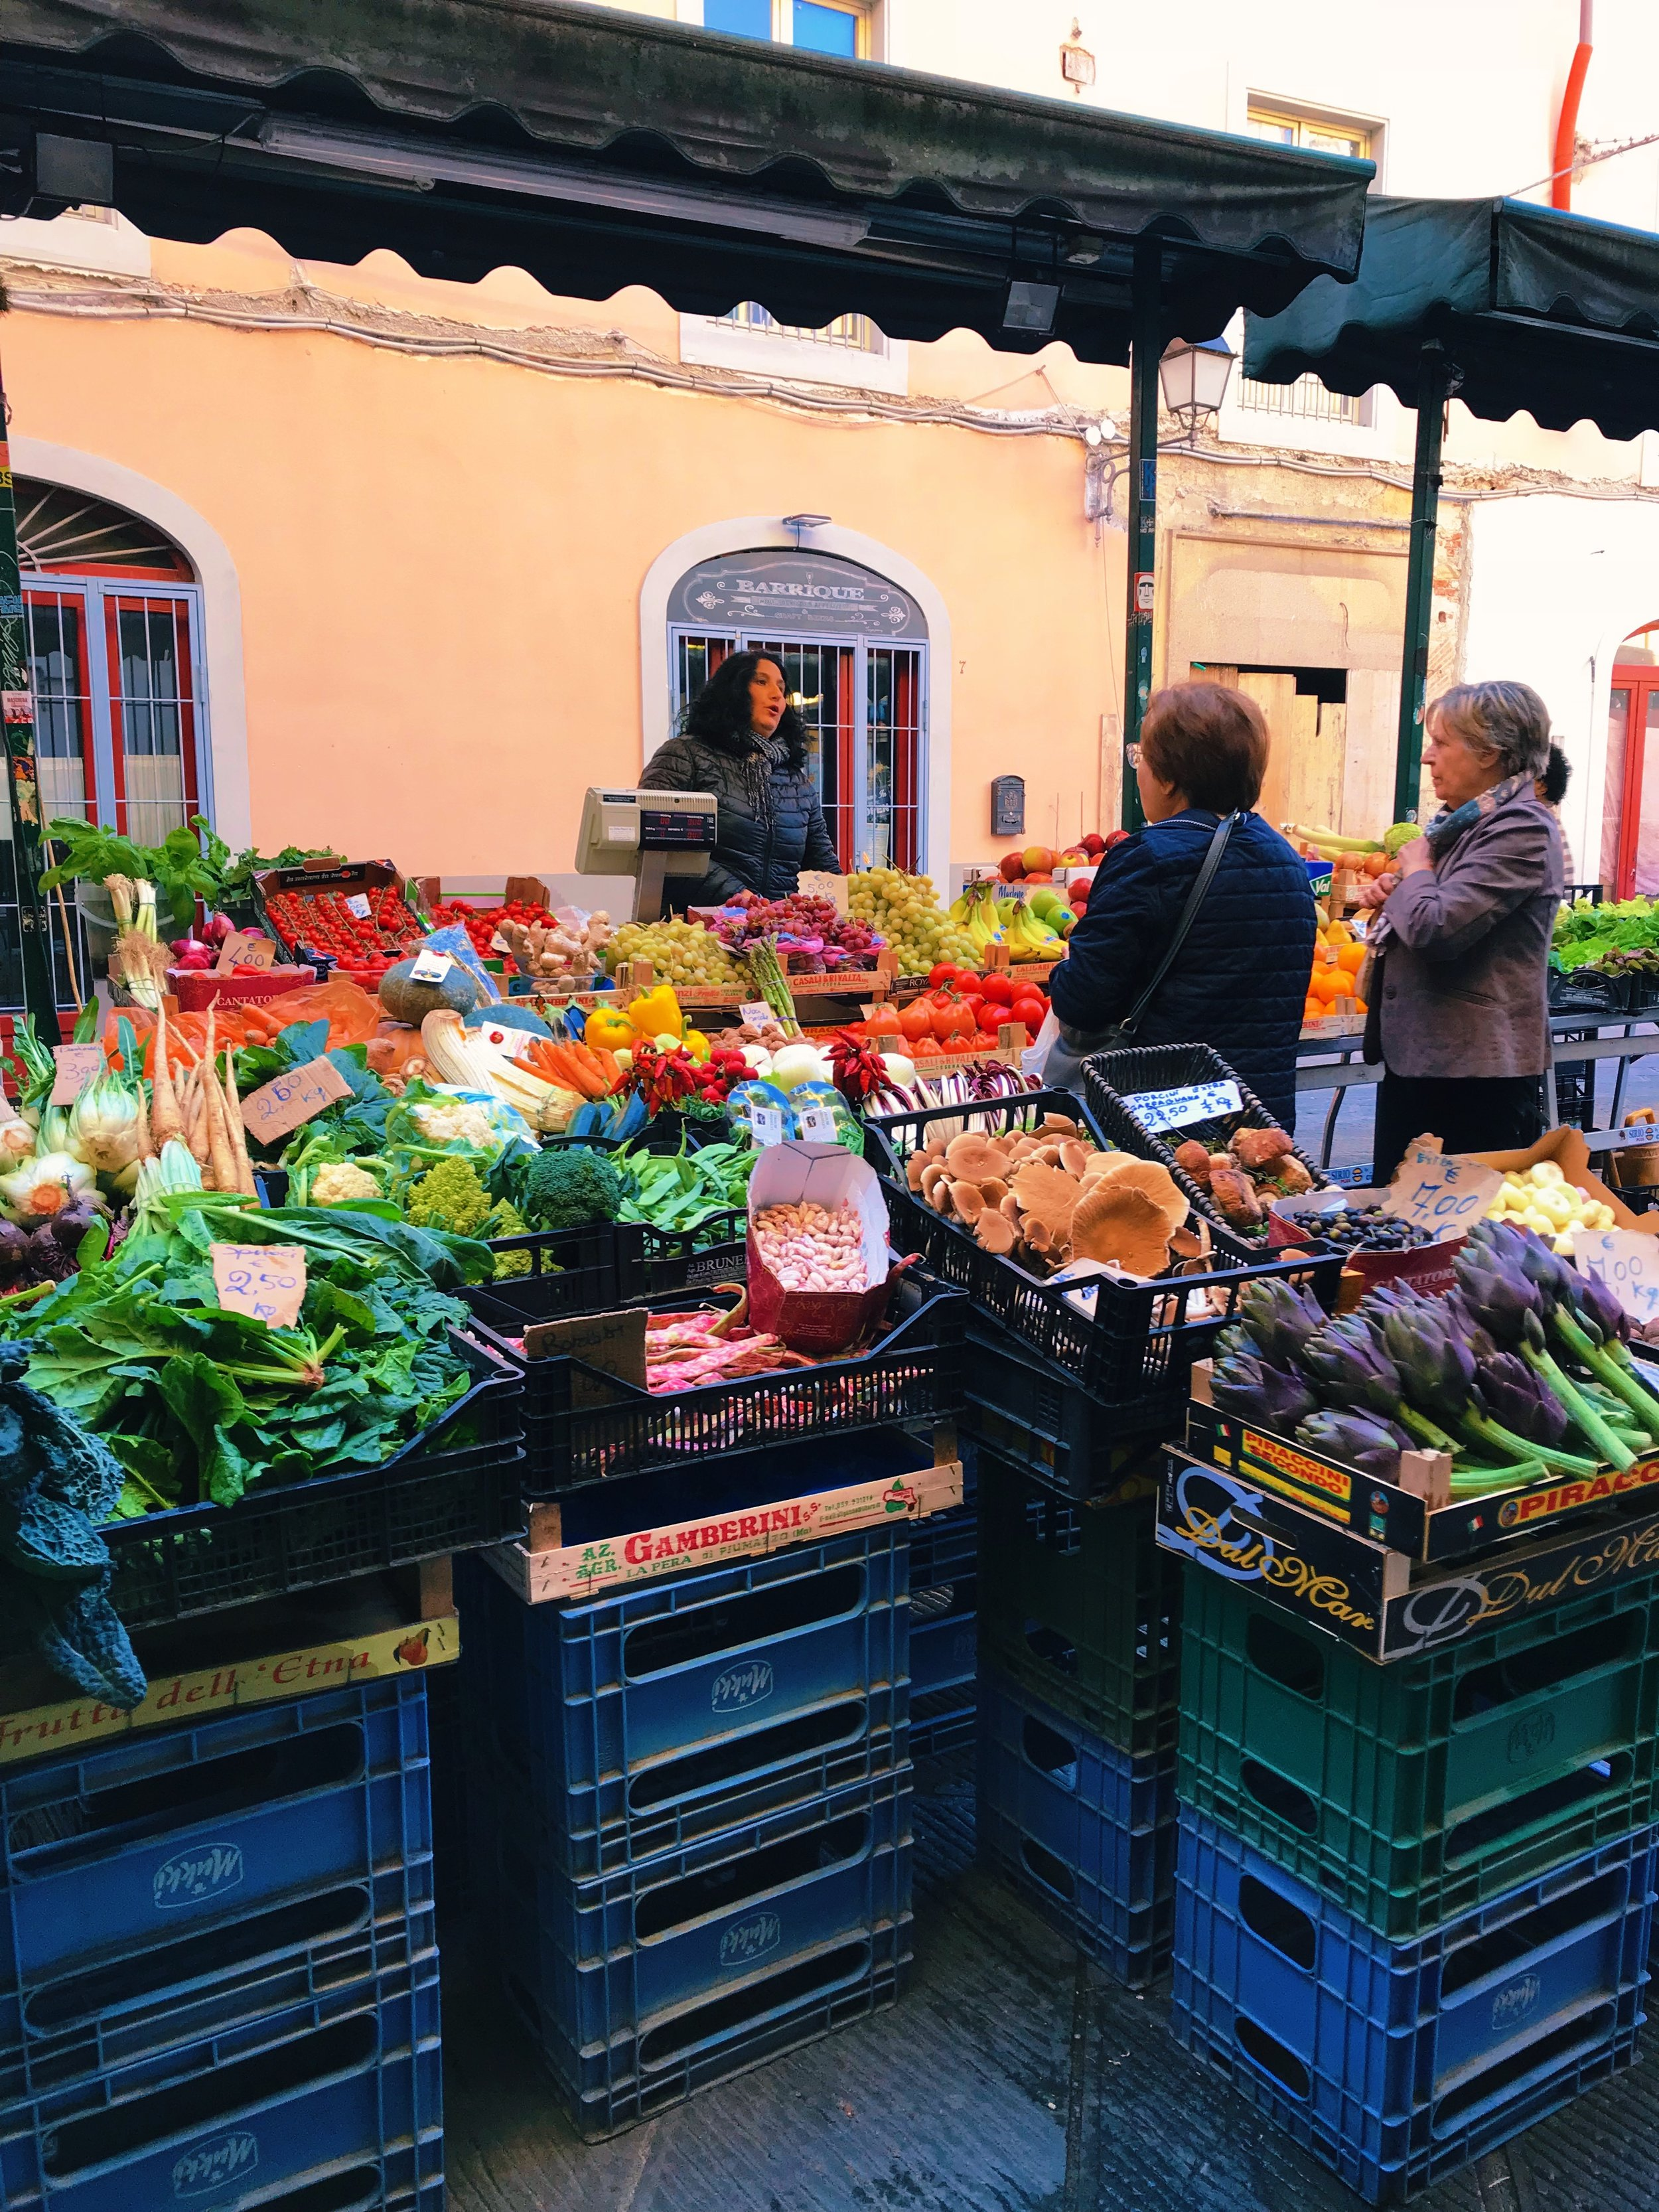 Piazza San Buonuomo. In the piazza next to The Violin pub, during the day you'll find a fresh vegetable market.